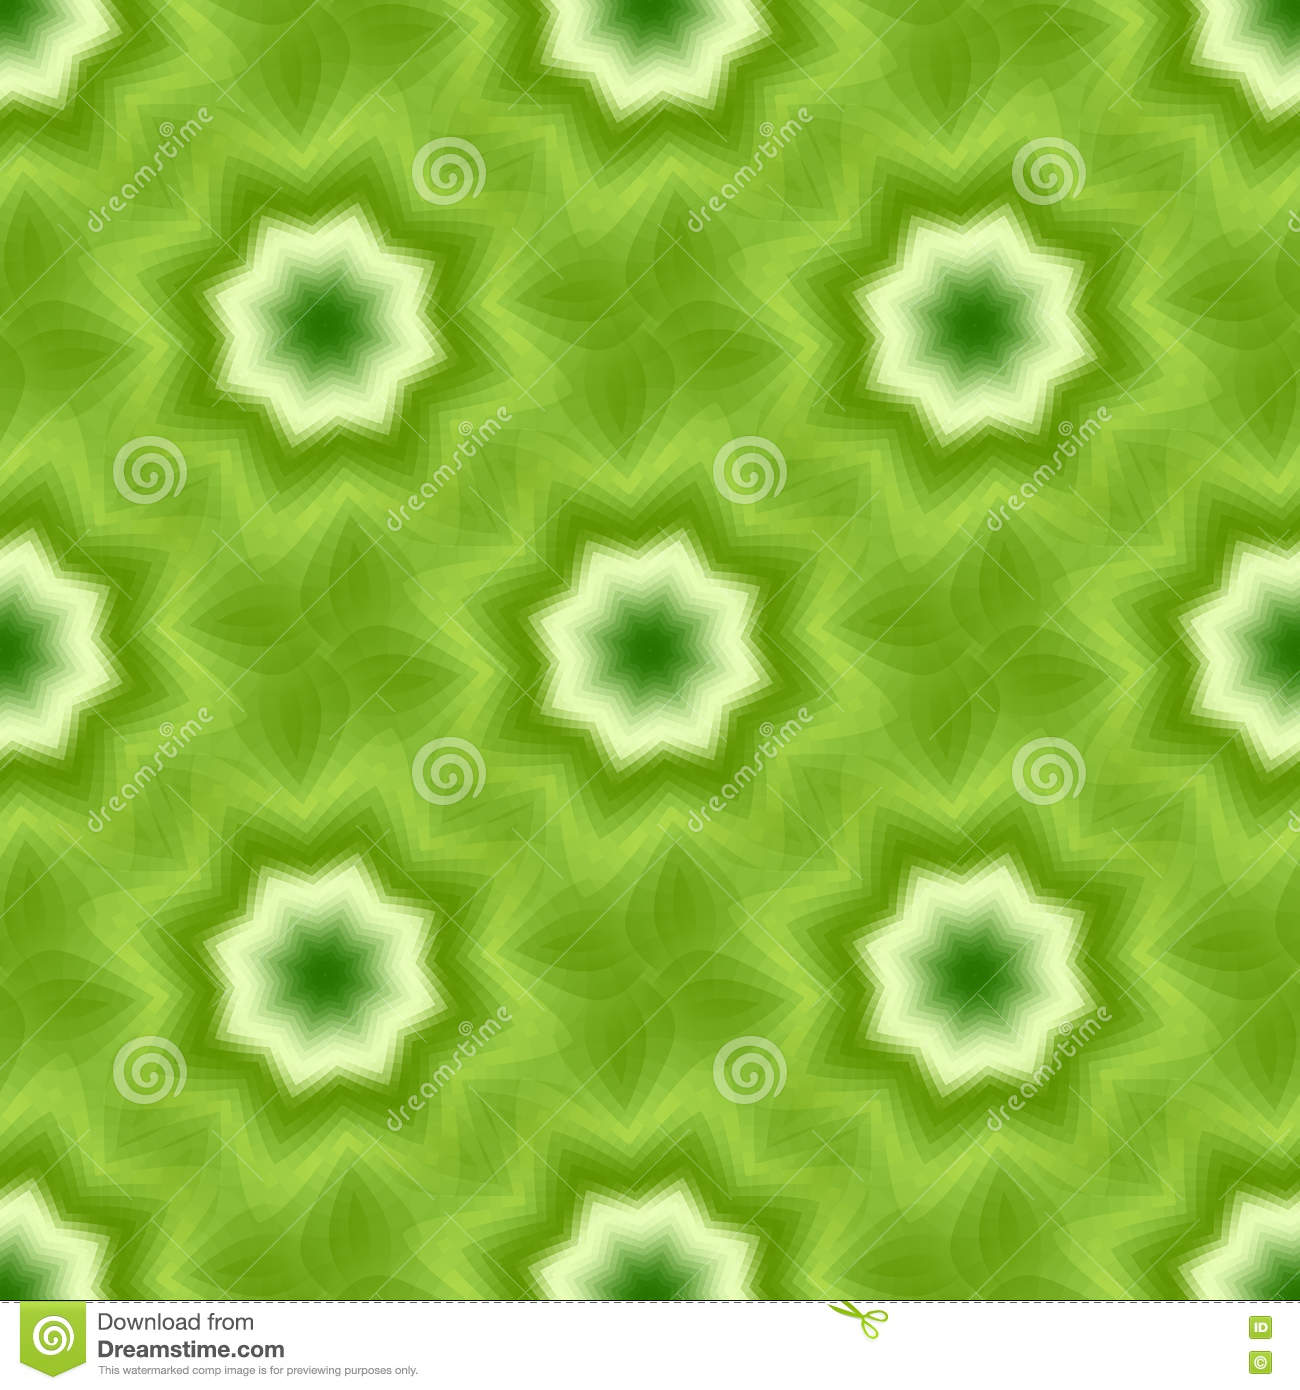 Green seamless fractal based tile with eight point star or flower and leaves